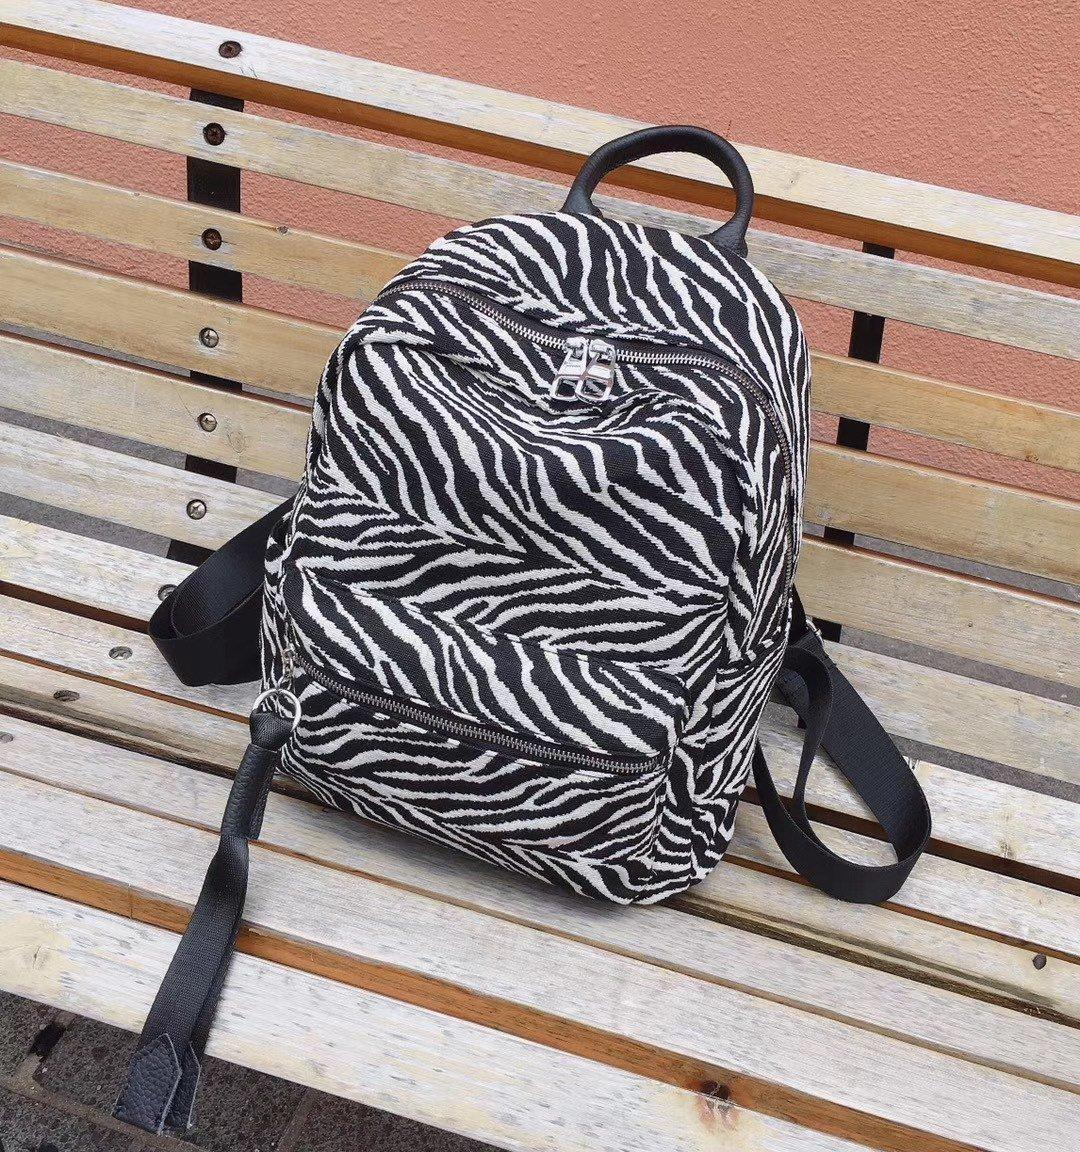 SSW007 Wholesale Backpack Fashion Men Women Backpack Travel Bags Stylish Bookbag Shoulder BagsBack pack 488 HBP 40023